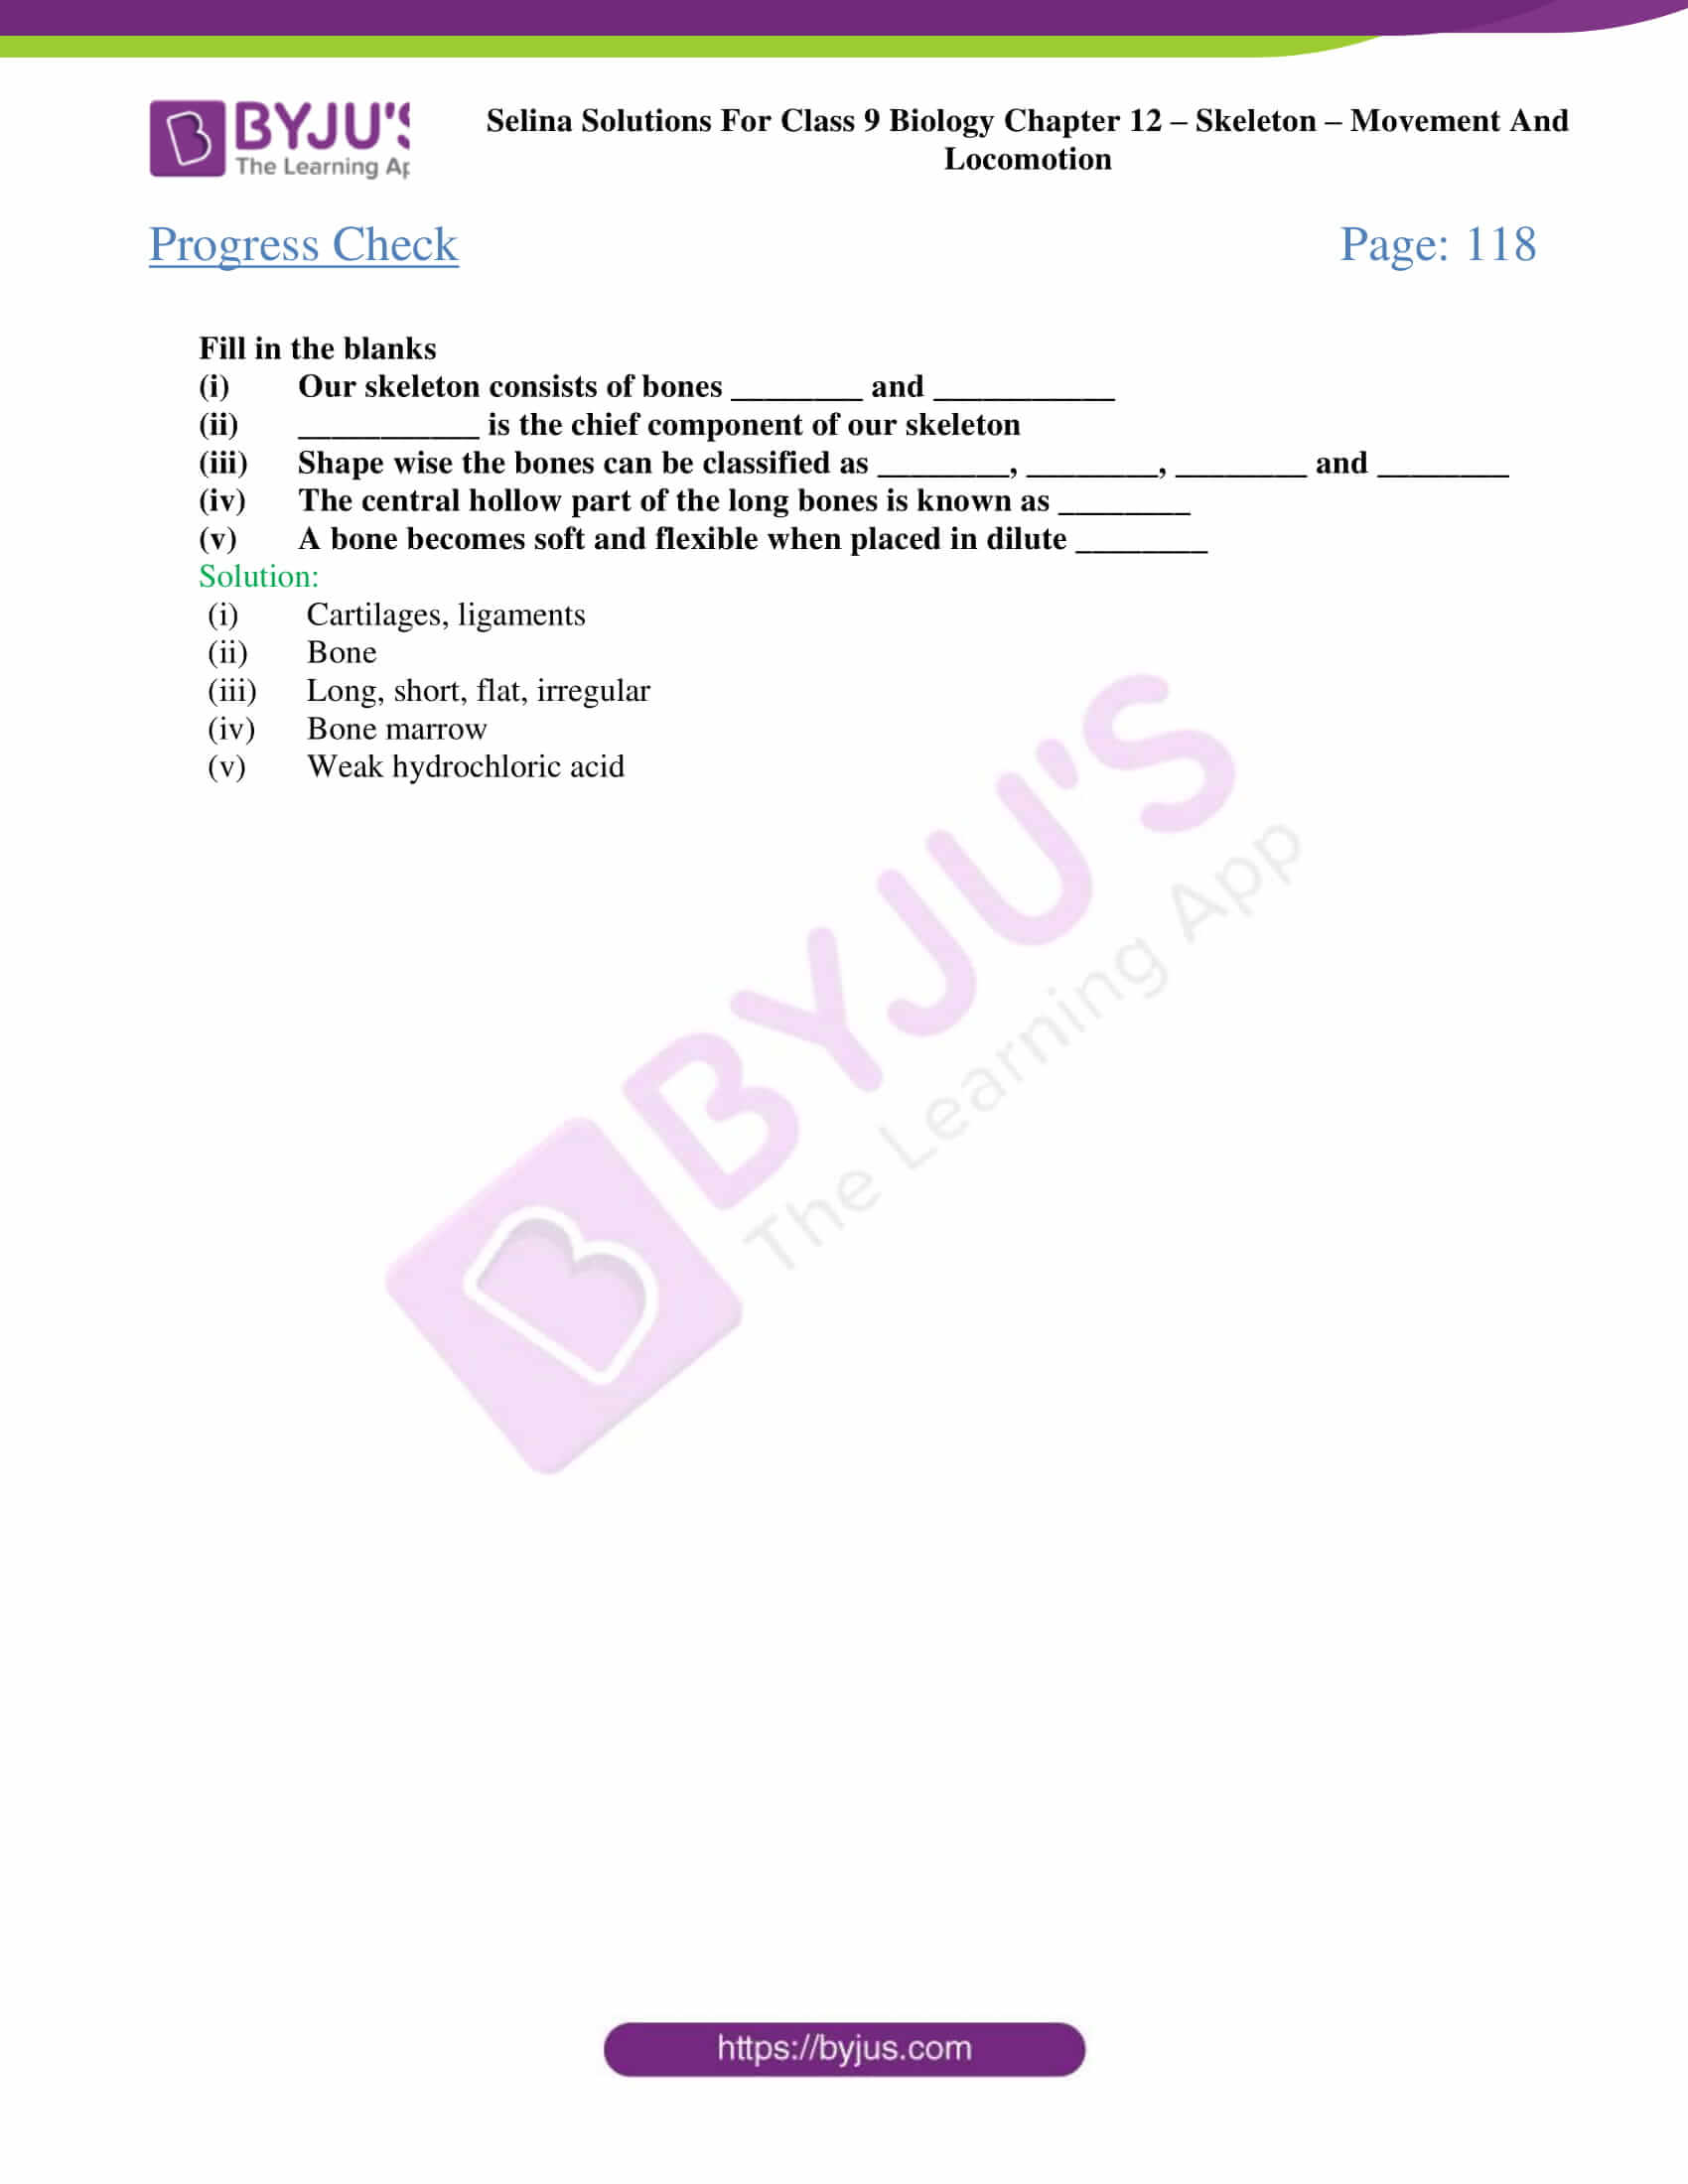 selina Solutions For Class 9 Biology Chapter 12 part 1